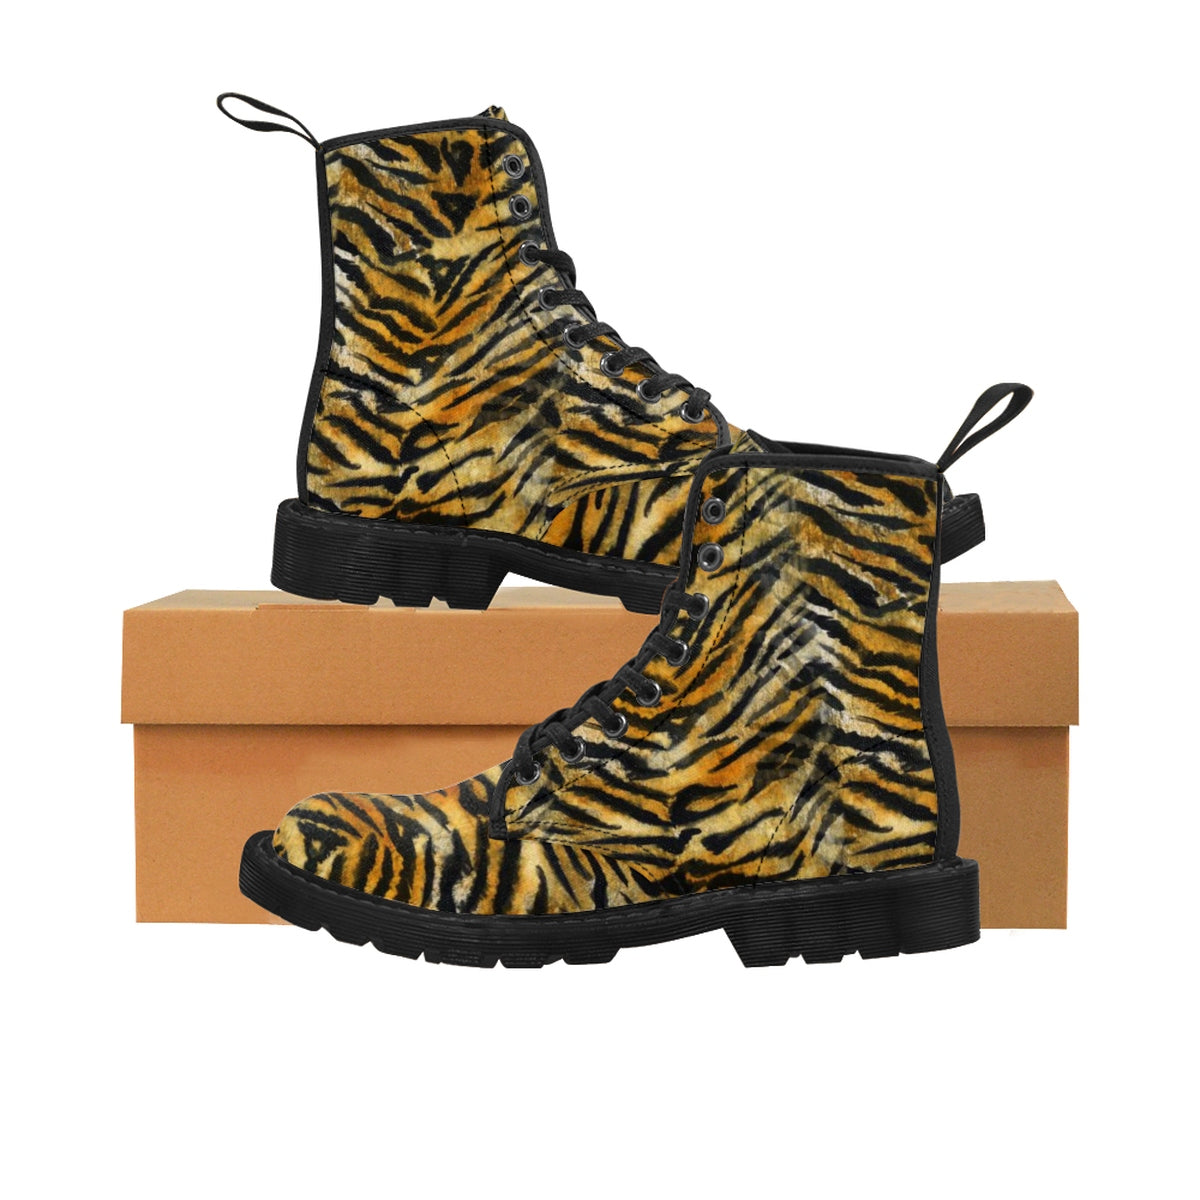 Orange Tiger Stripe Animal Print Designer Men's Winter Boots (US Size: 7-10.5)-Men's Boots-Black-US 9-Heidi Kimura Art LLC Orange Tiger Stripe Men's Boots, Orange Tiger Stripe Animal Print Designer Men's Winter Boots (US Size: 7-10.5) Wild Men's Lace-Up Winter Boots Cap Toe Shoes, Designed in USA